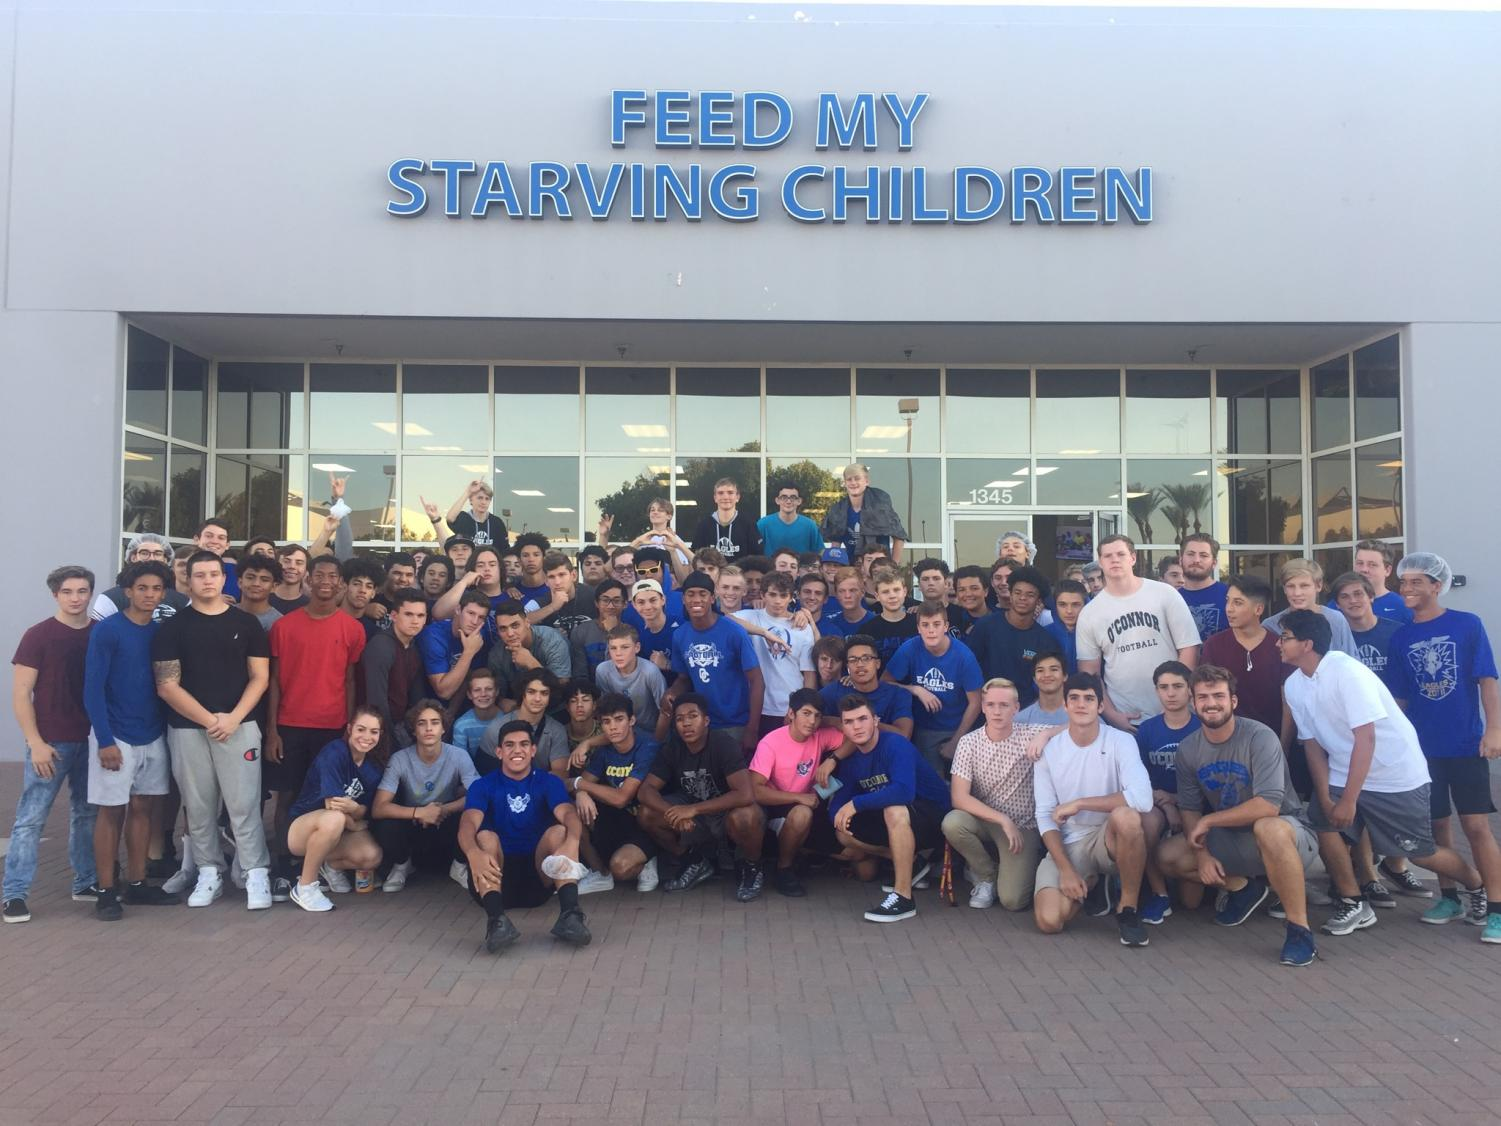 OHS Football and spiritline teams help out those in need through Feed My Starving Children packing programs.